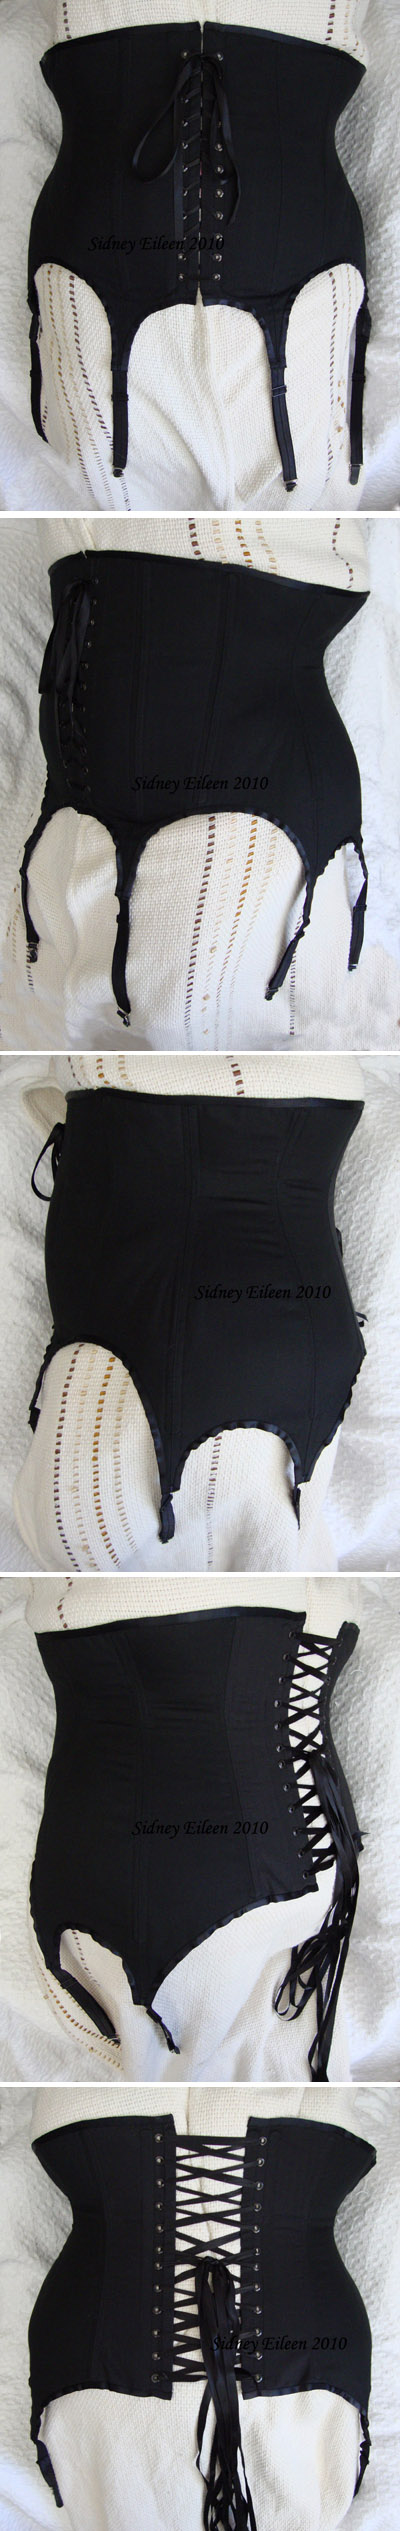 Plus-Size Tight Lacing with Garters - All Views, by Sidney Eileen